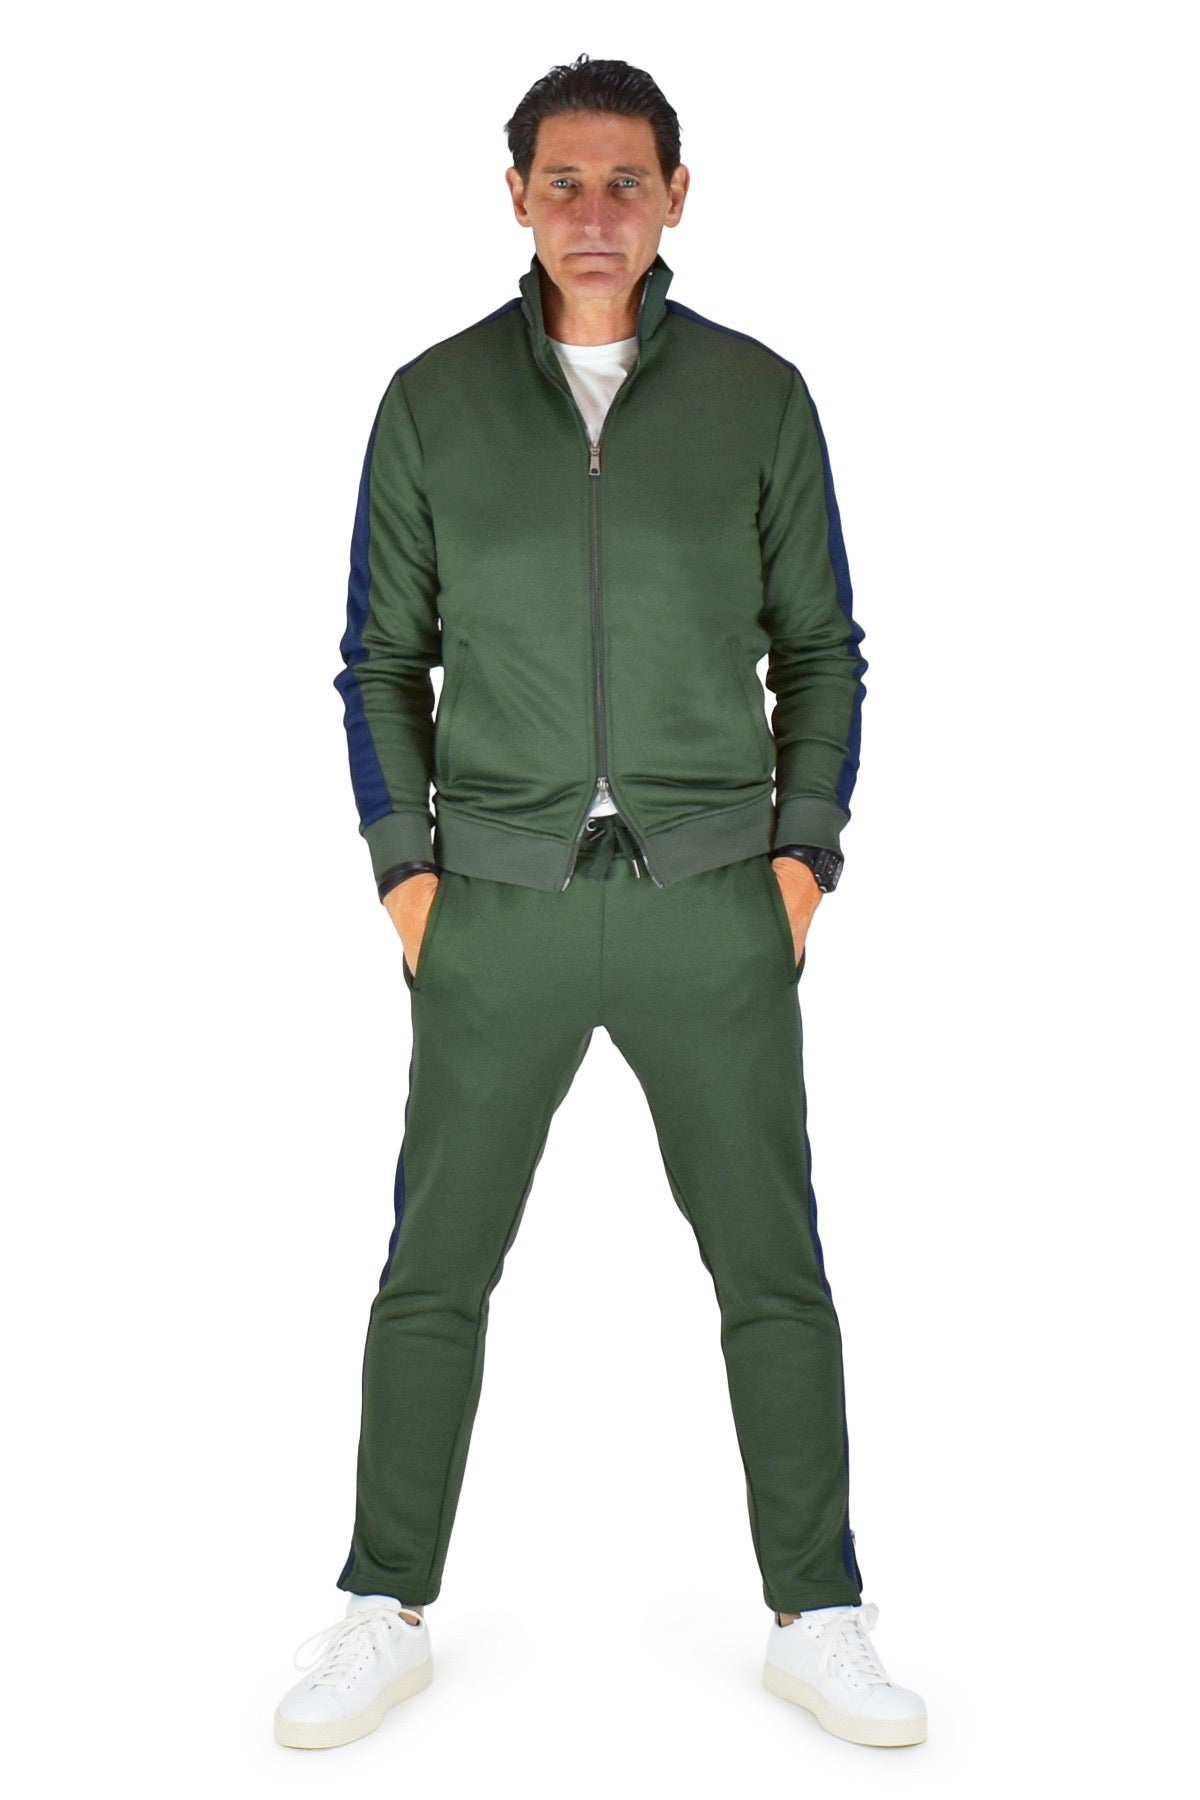 David August Tracksuit in Green with Navy Trim